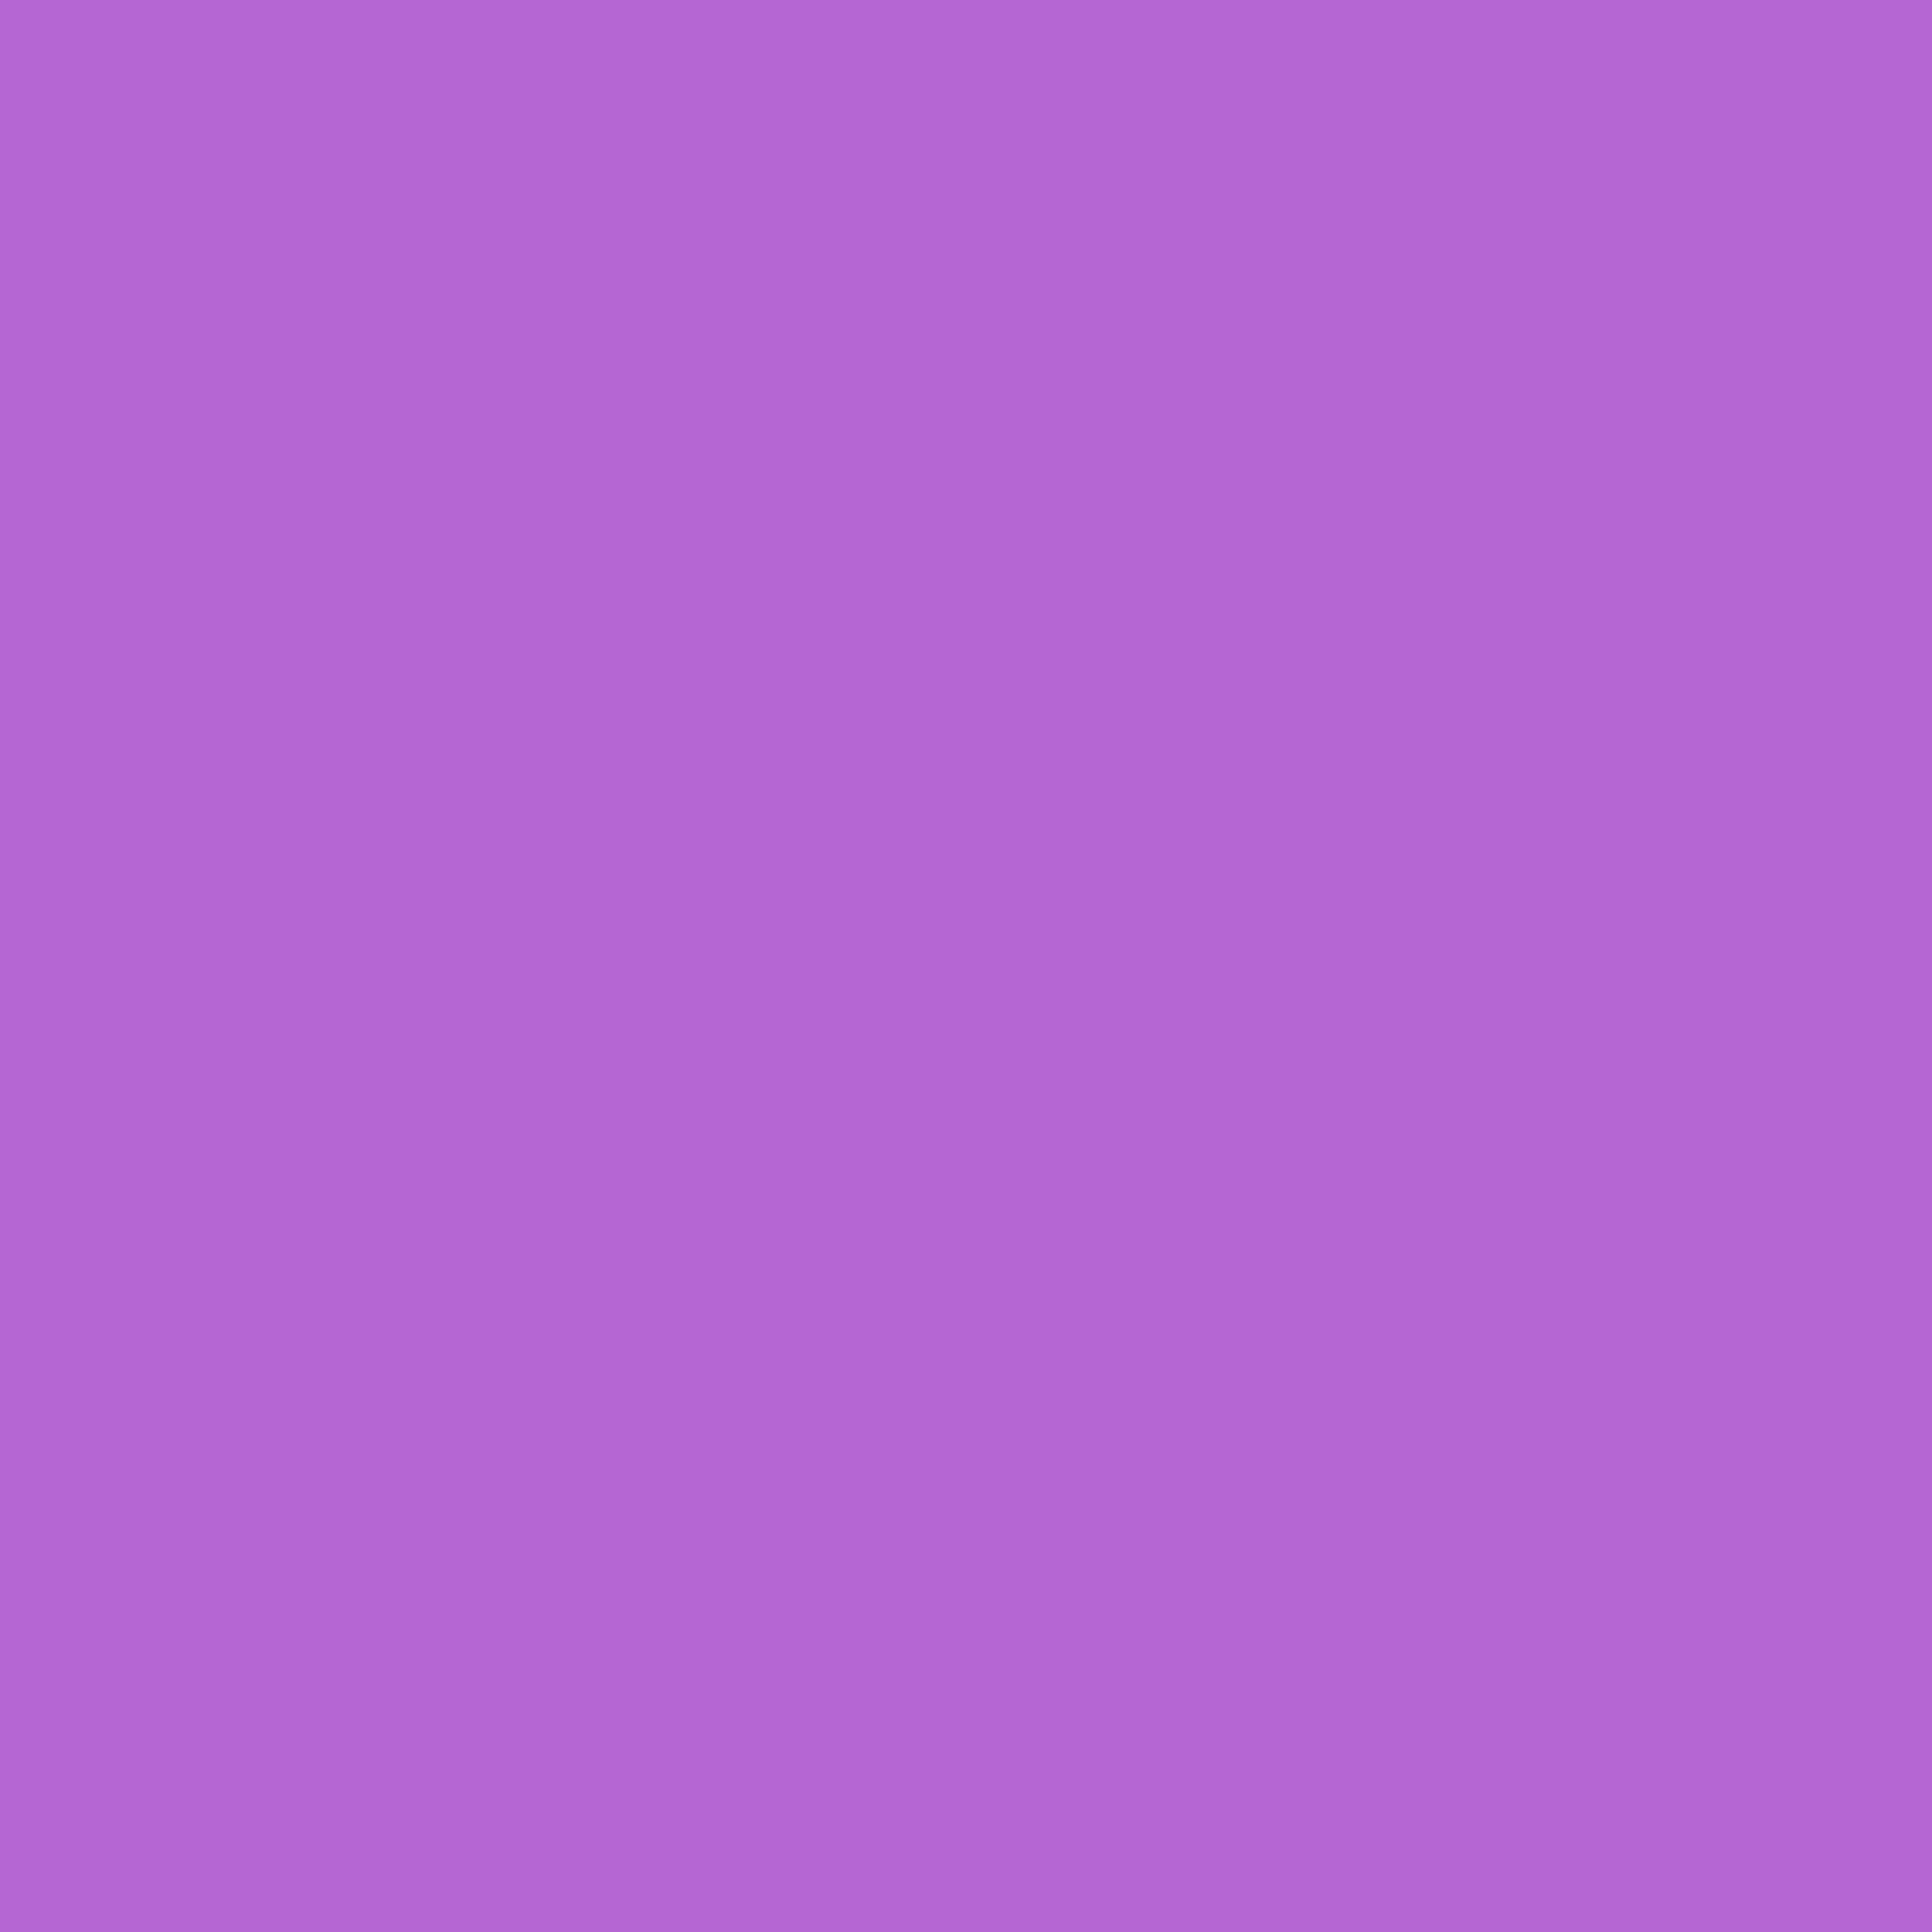 2732x2732 Rich Lilac Solid Color Background